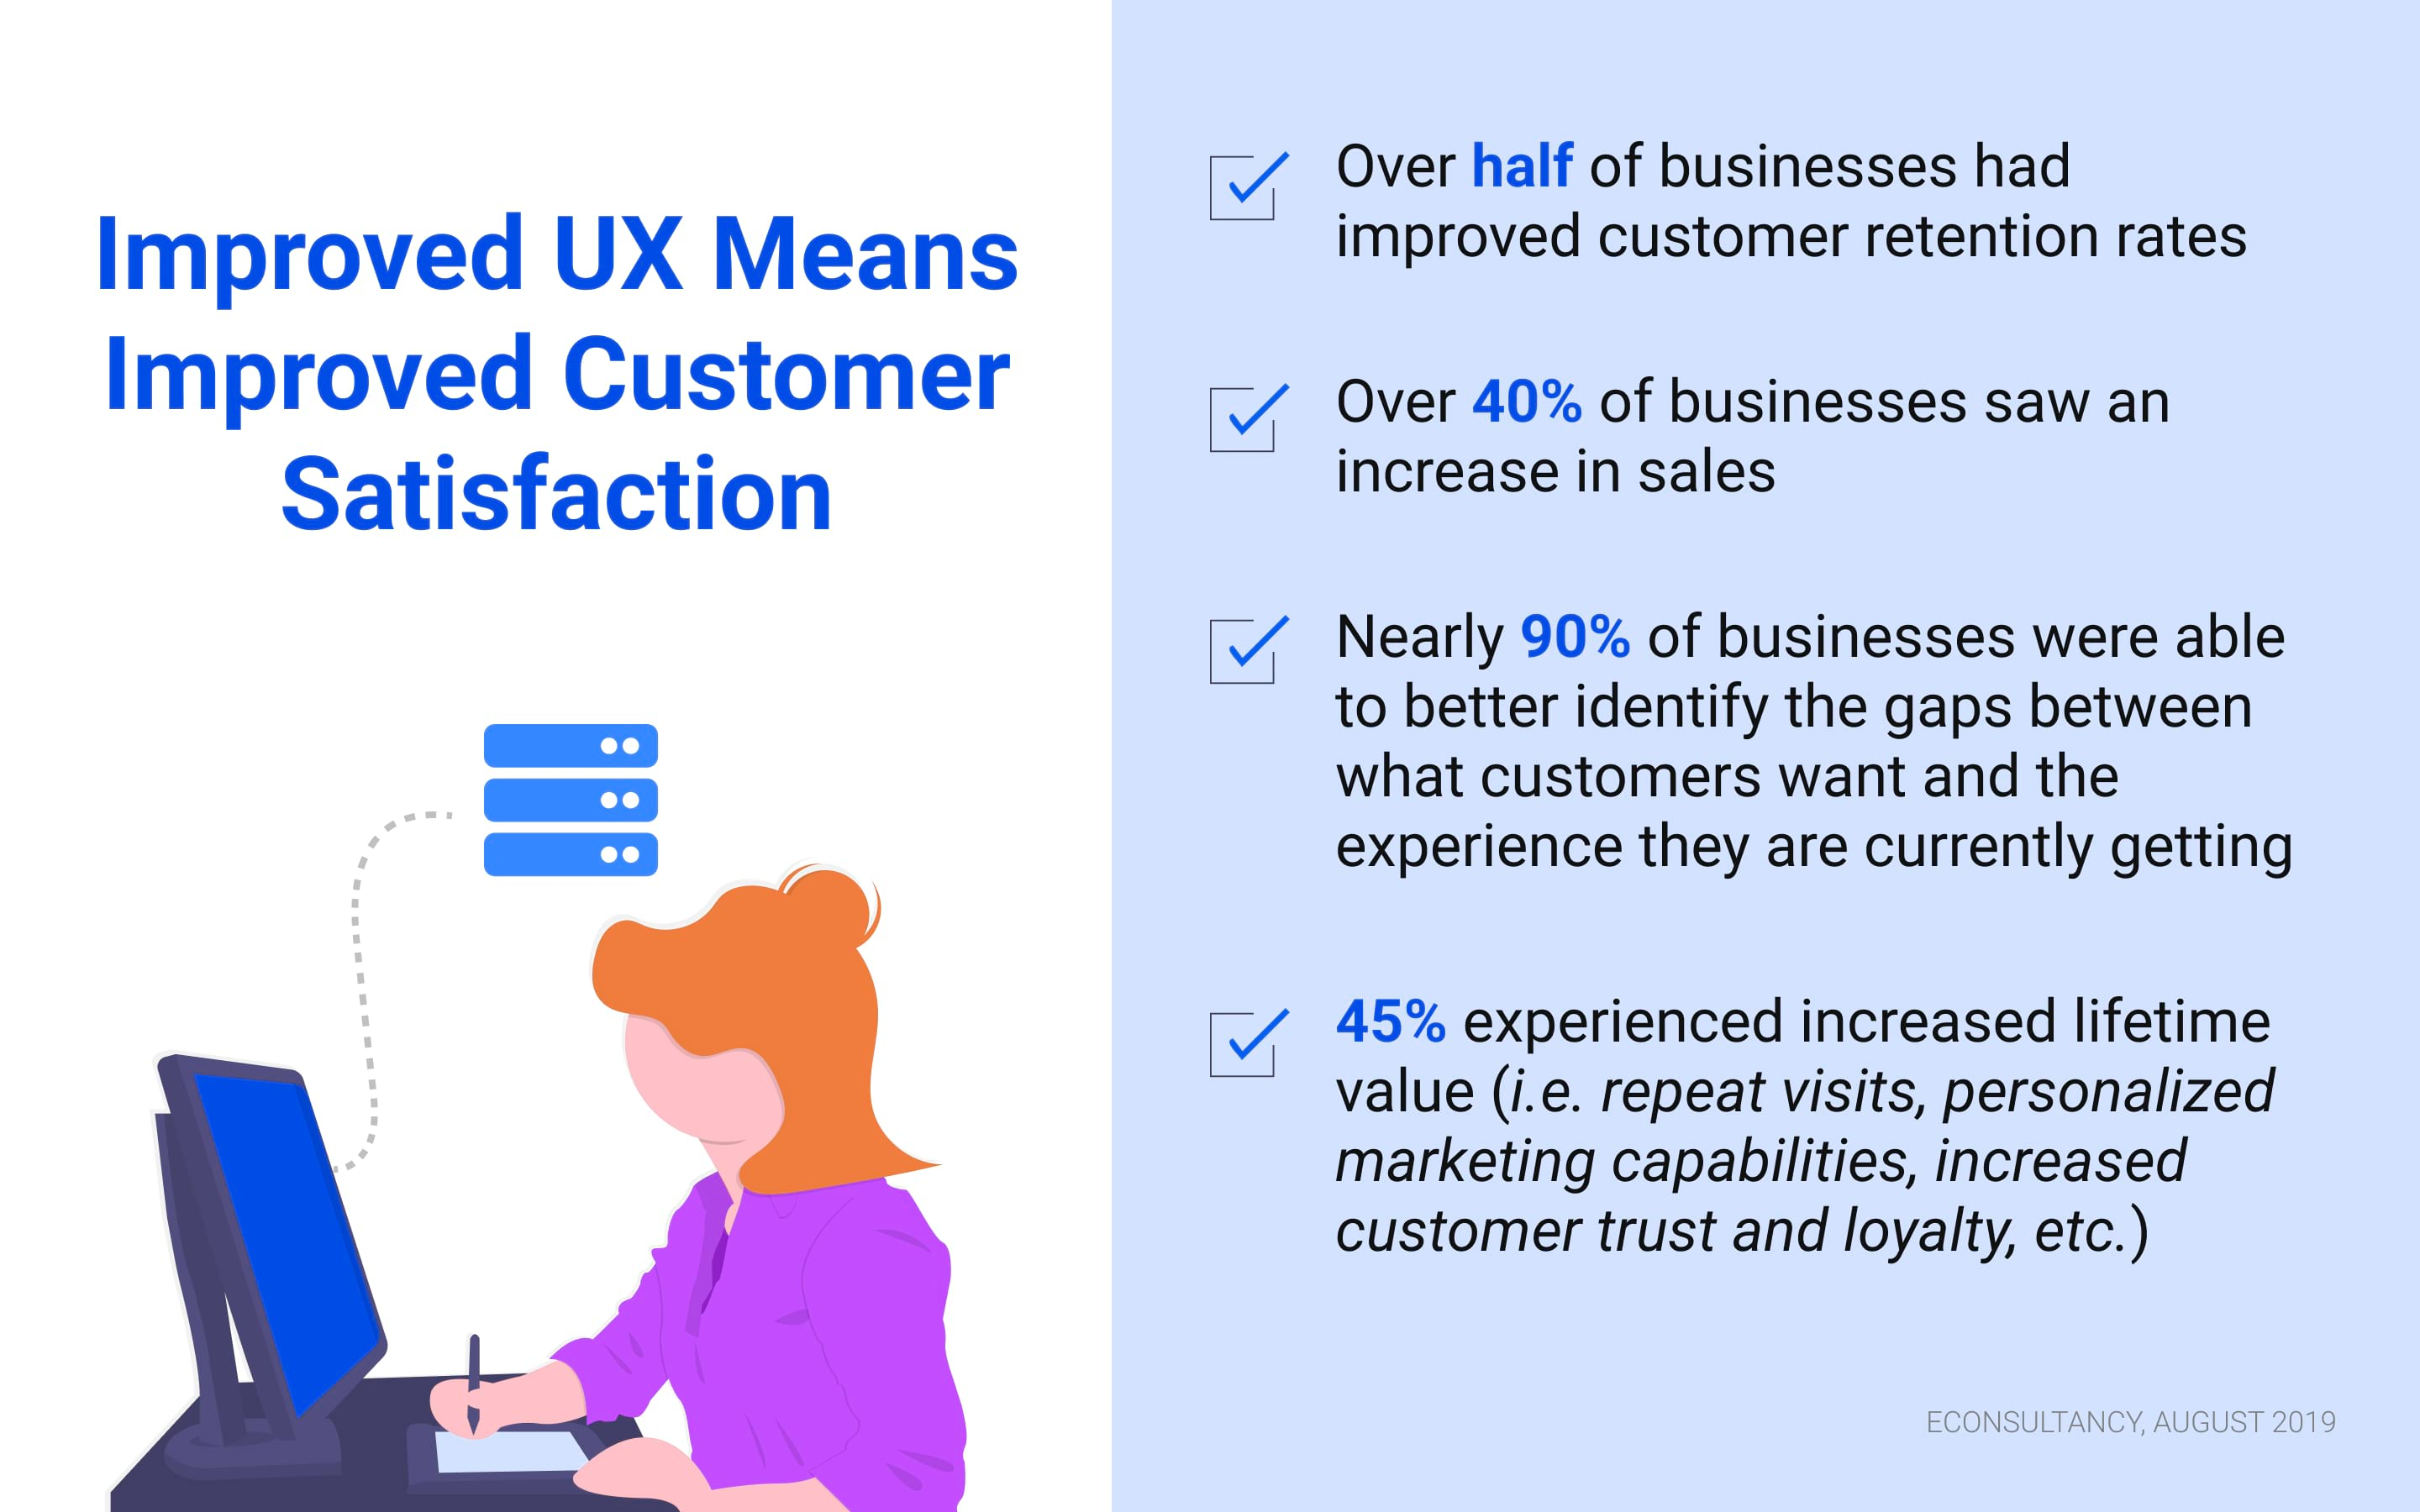 Omnichannel experience reported outcomes